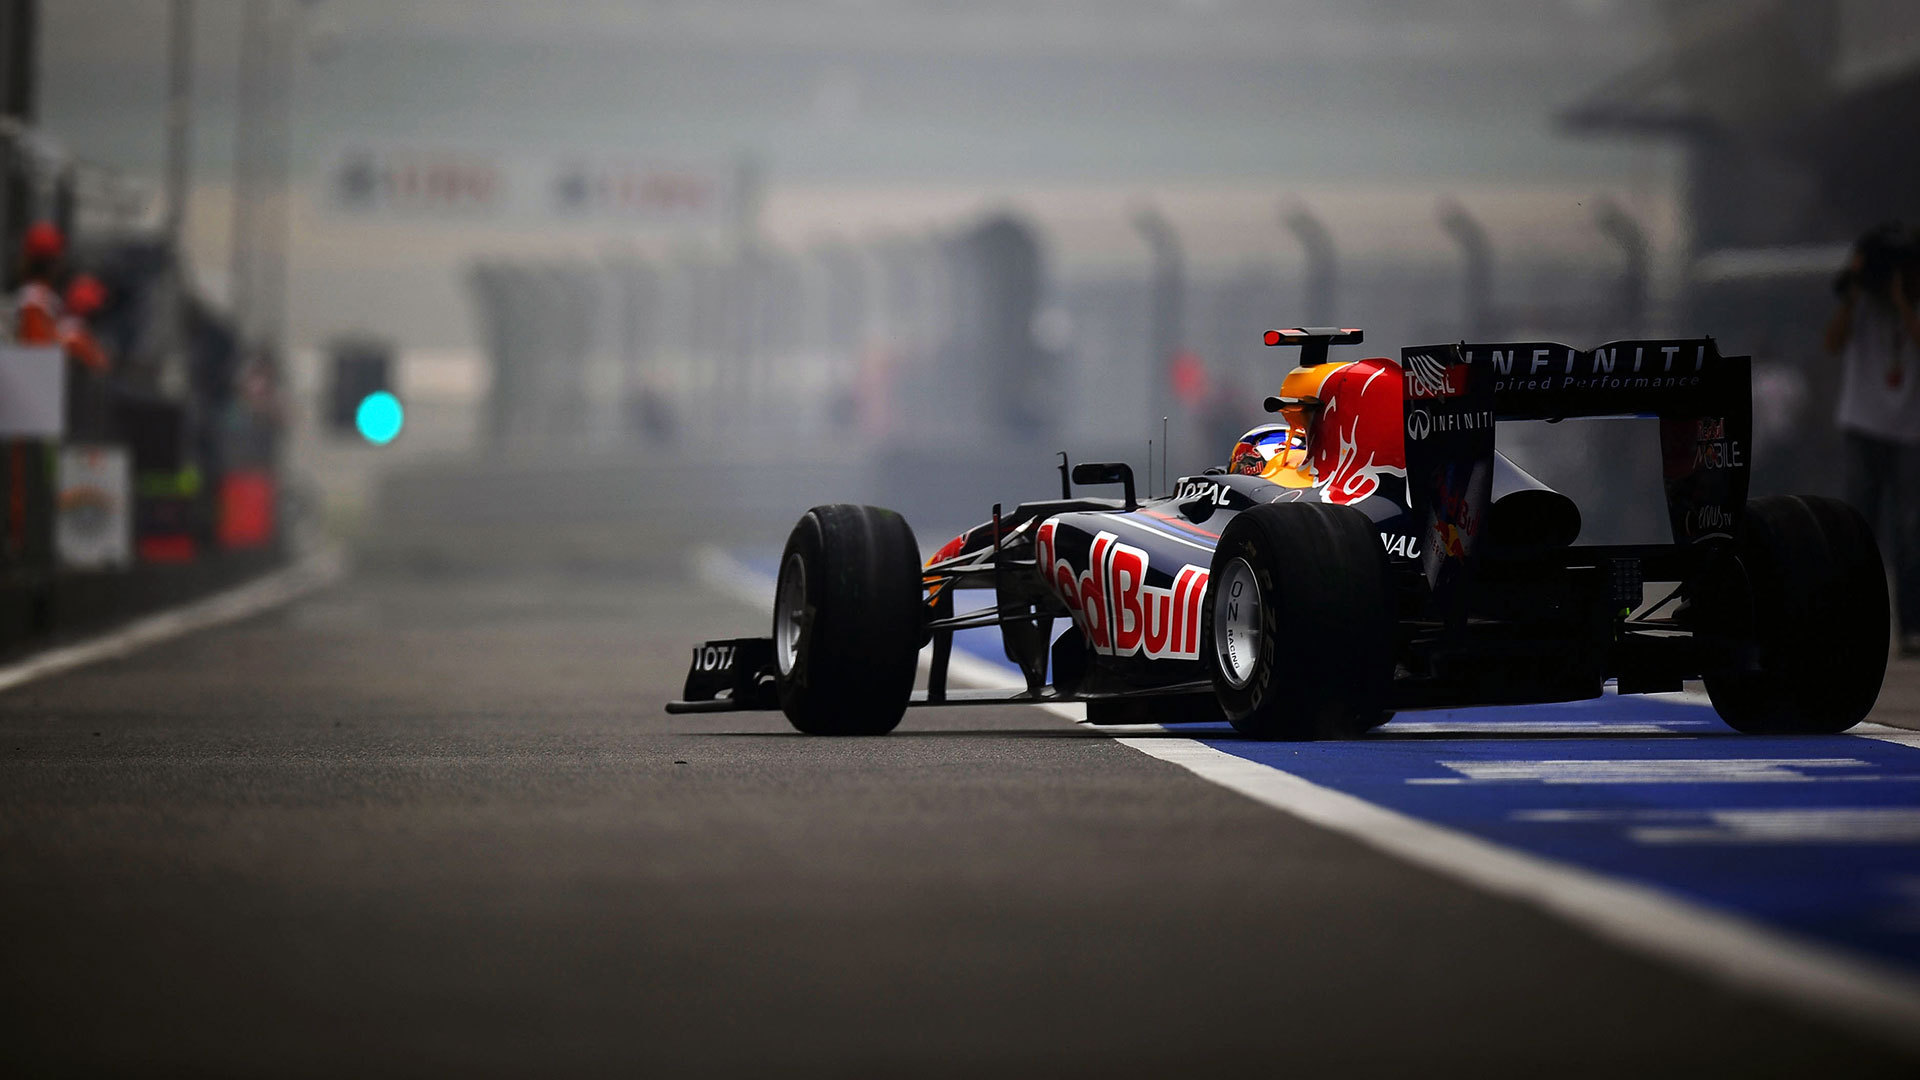 F1 Hd Extreme Sports: Background Images - Wallpaper Abyss